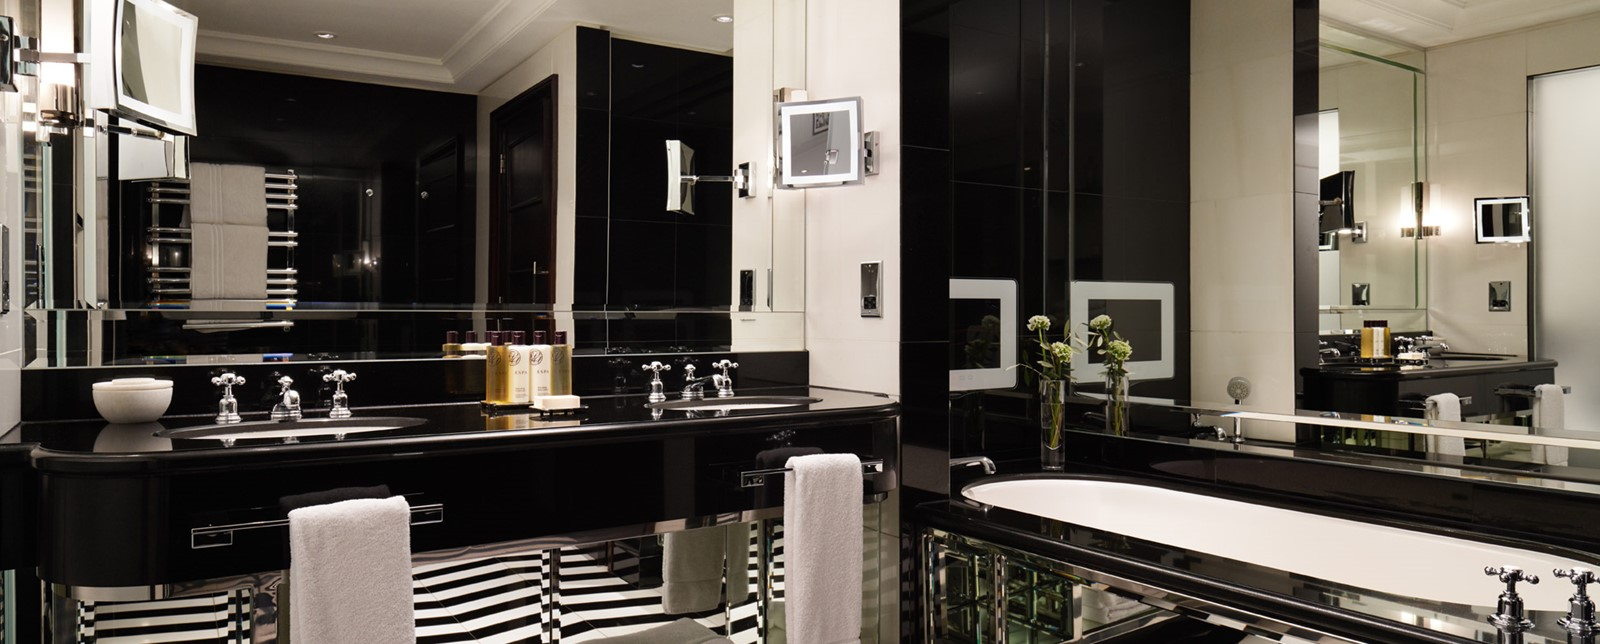 corinthia london actors penthouse bathroom